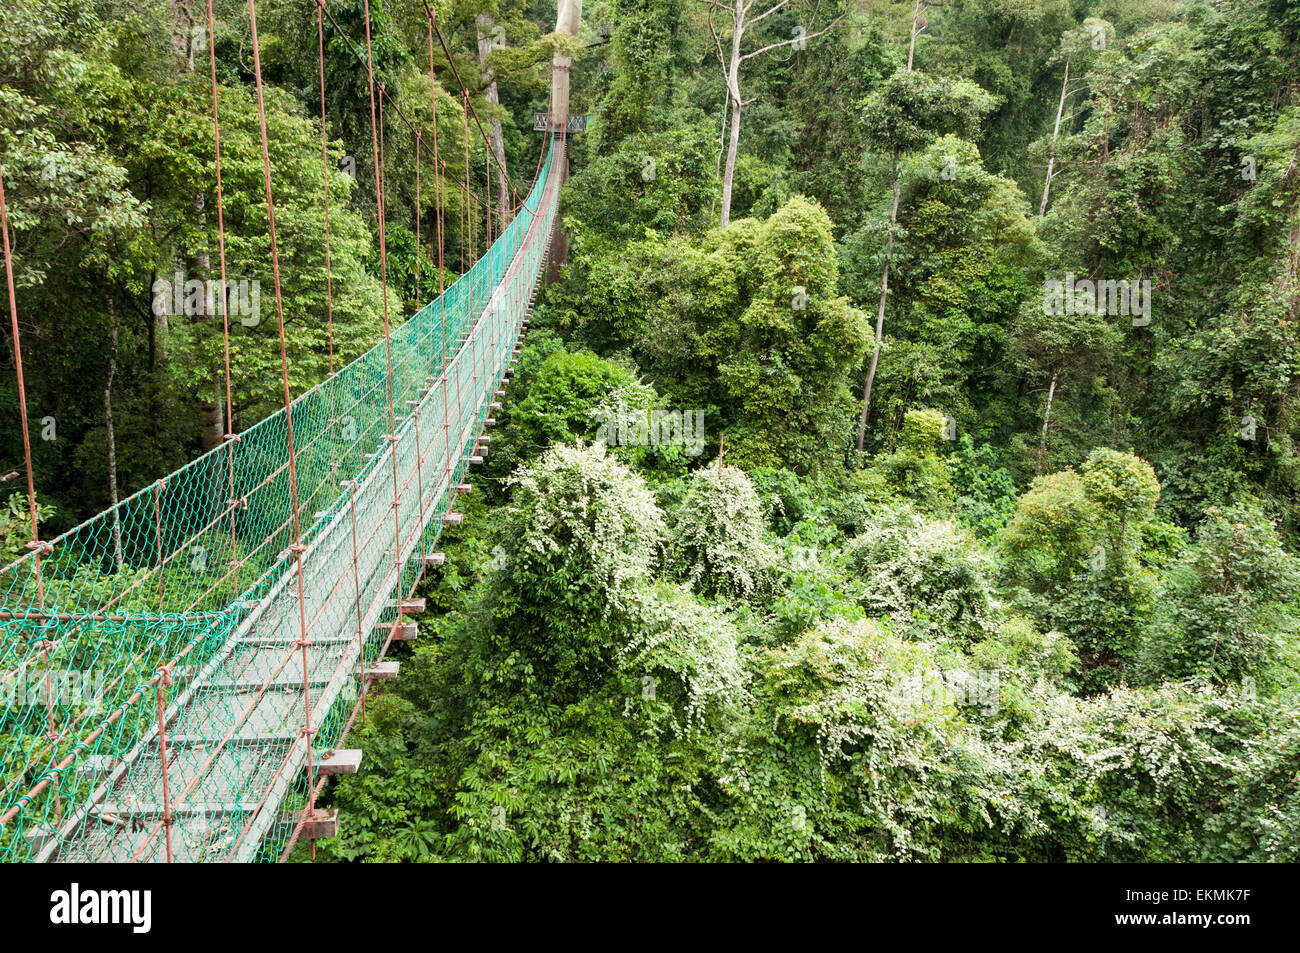 Canopy walk in the Danum Valley Conservation Area, Borneo, Malaysia Stock Photo